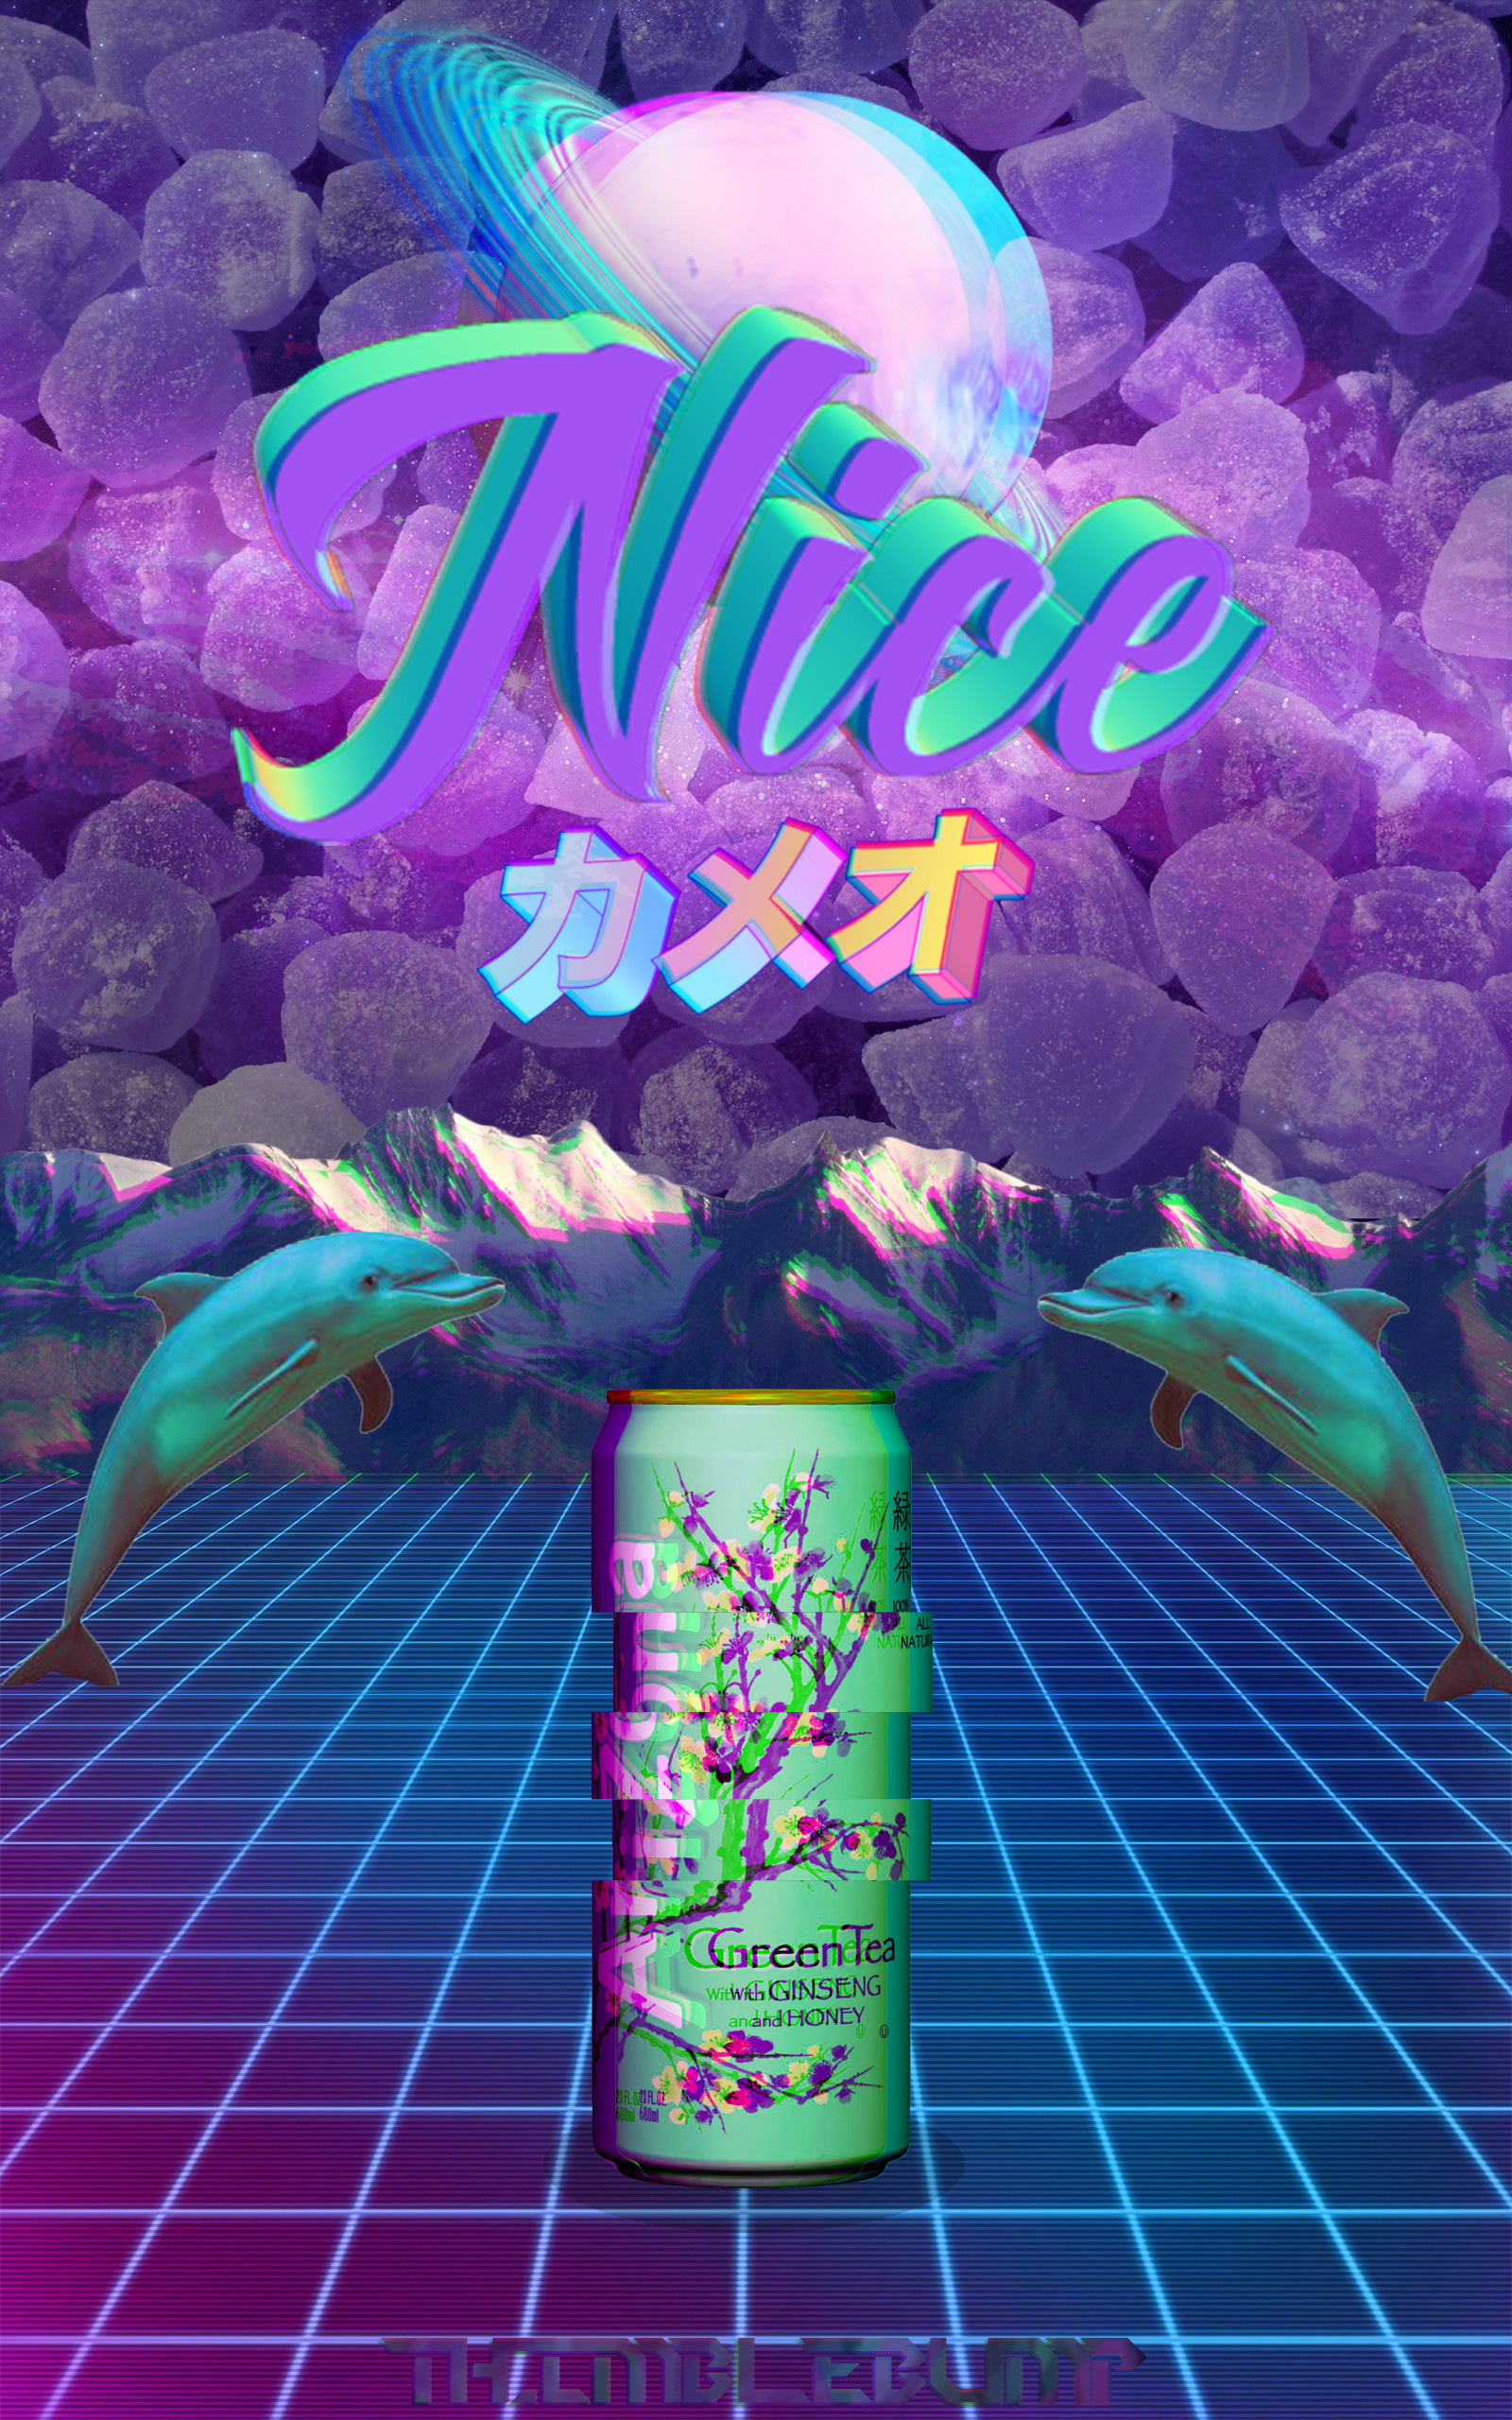 Explore Vaporwave Wallpaper, Aesthetics, and more!